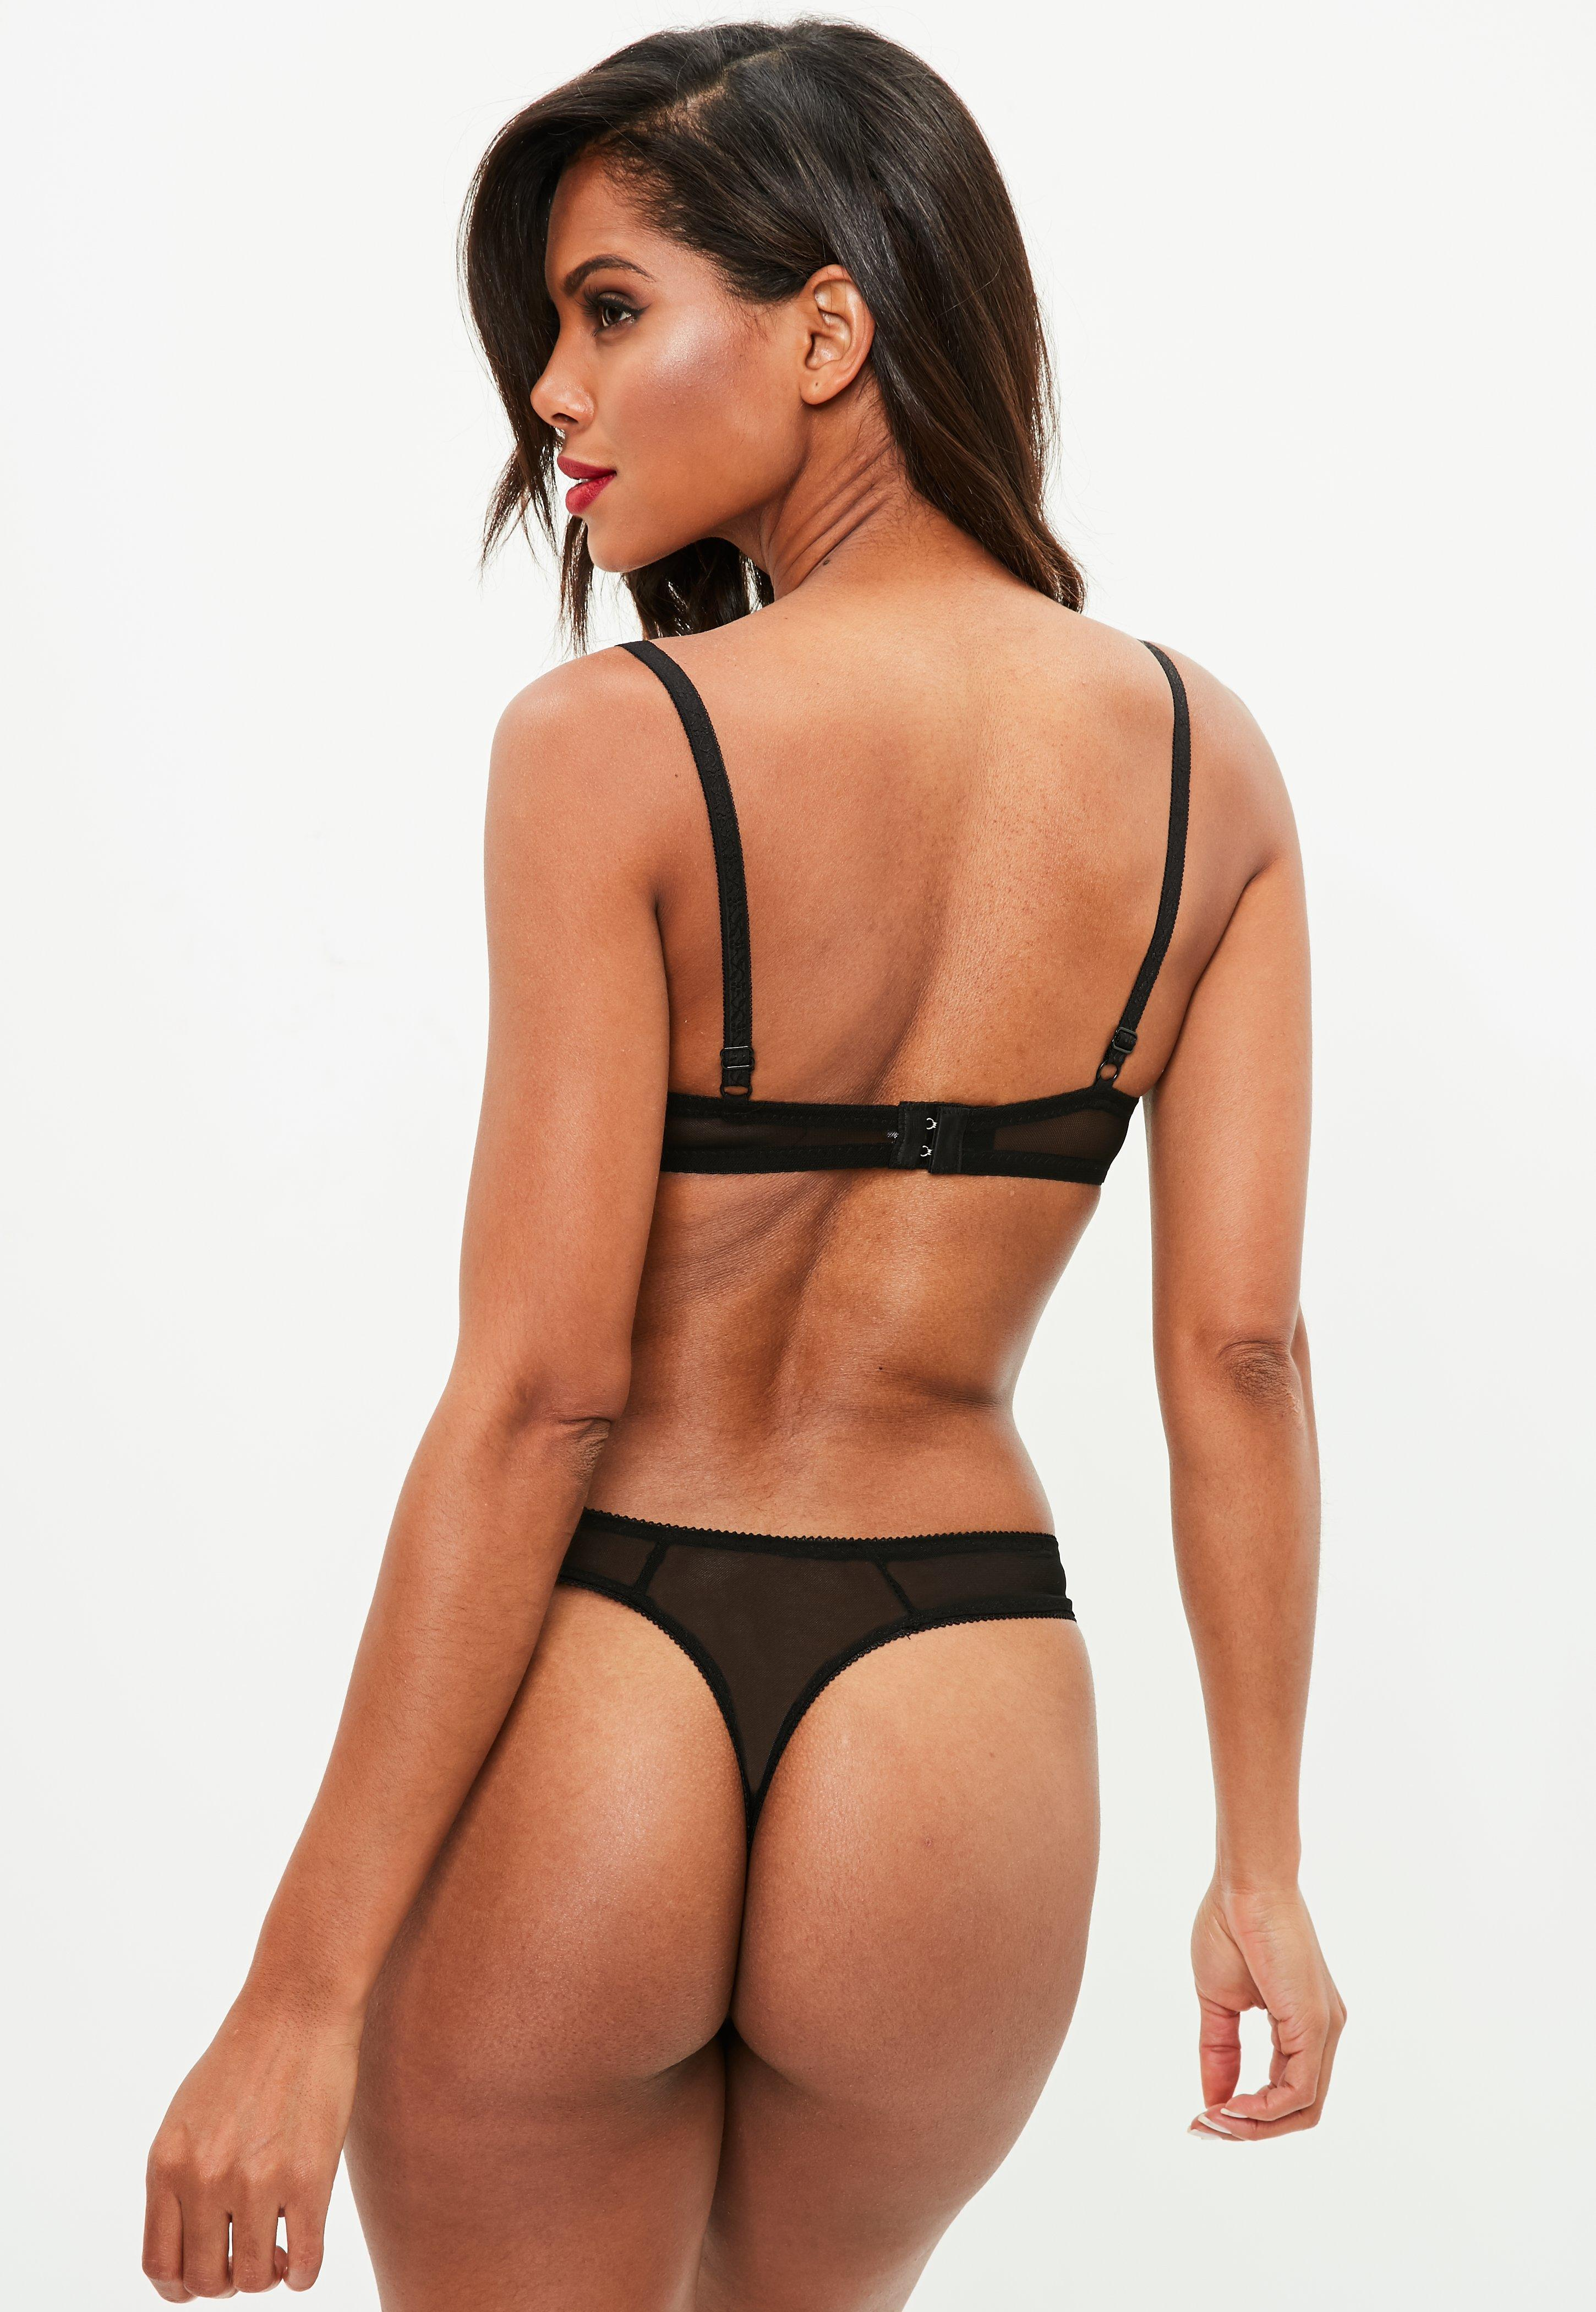 Lyst - Missguided Black Chiffon Pleat Lace Push Up Bra And Thong in ... 226525403